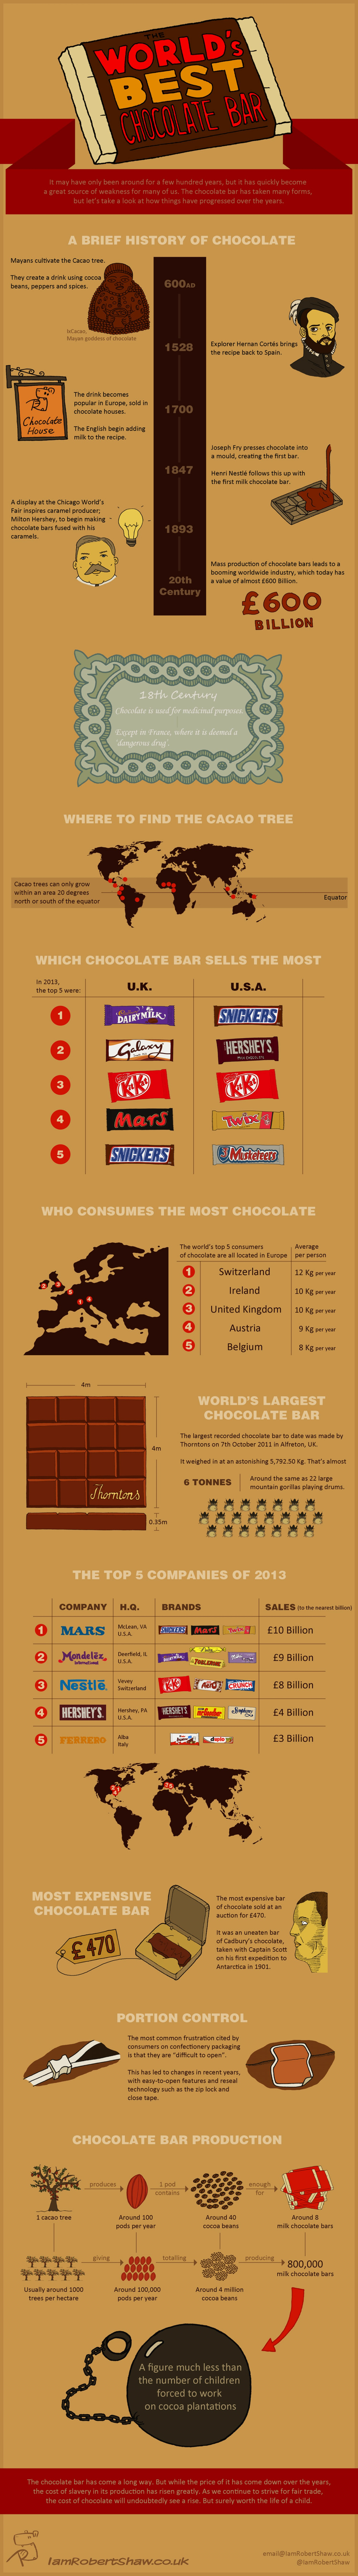 01 the-worlds-best-chocolate-bar-thumbnail_53565f7c0f1a4_w1500